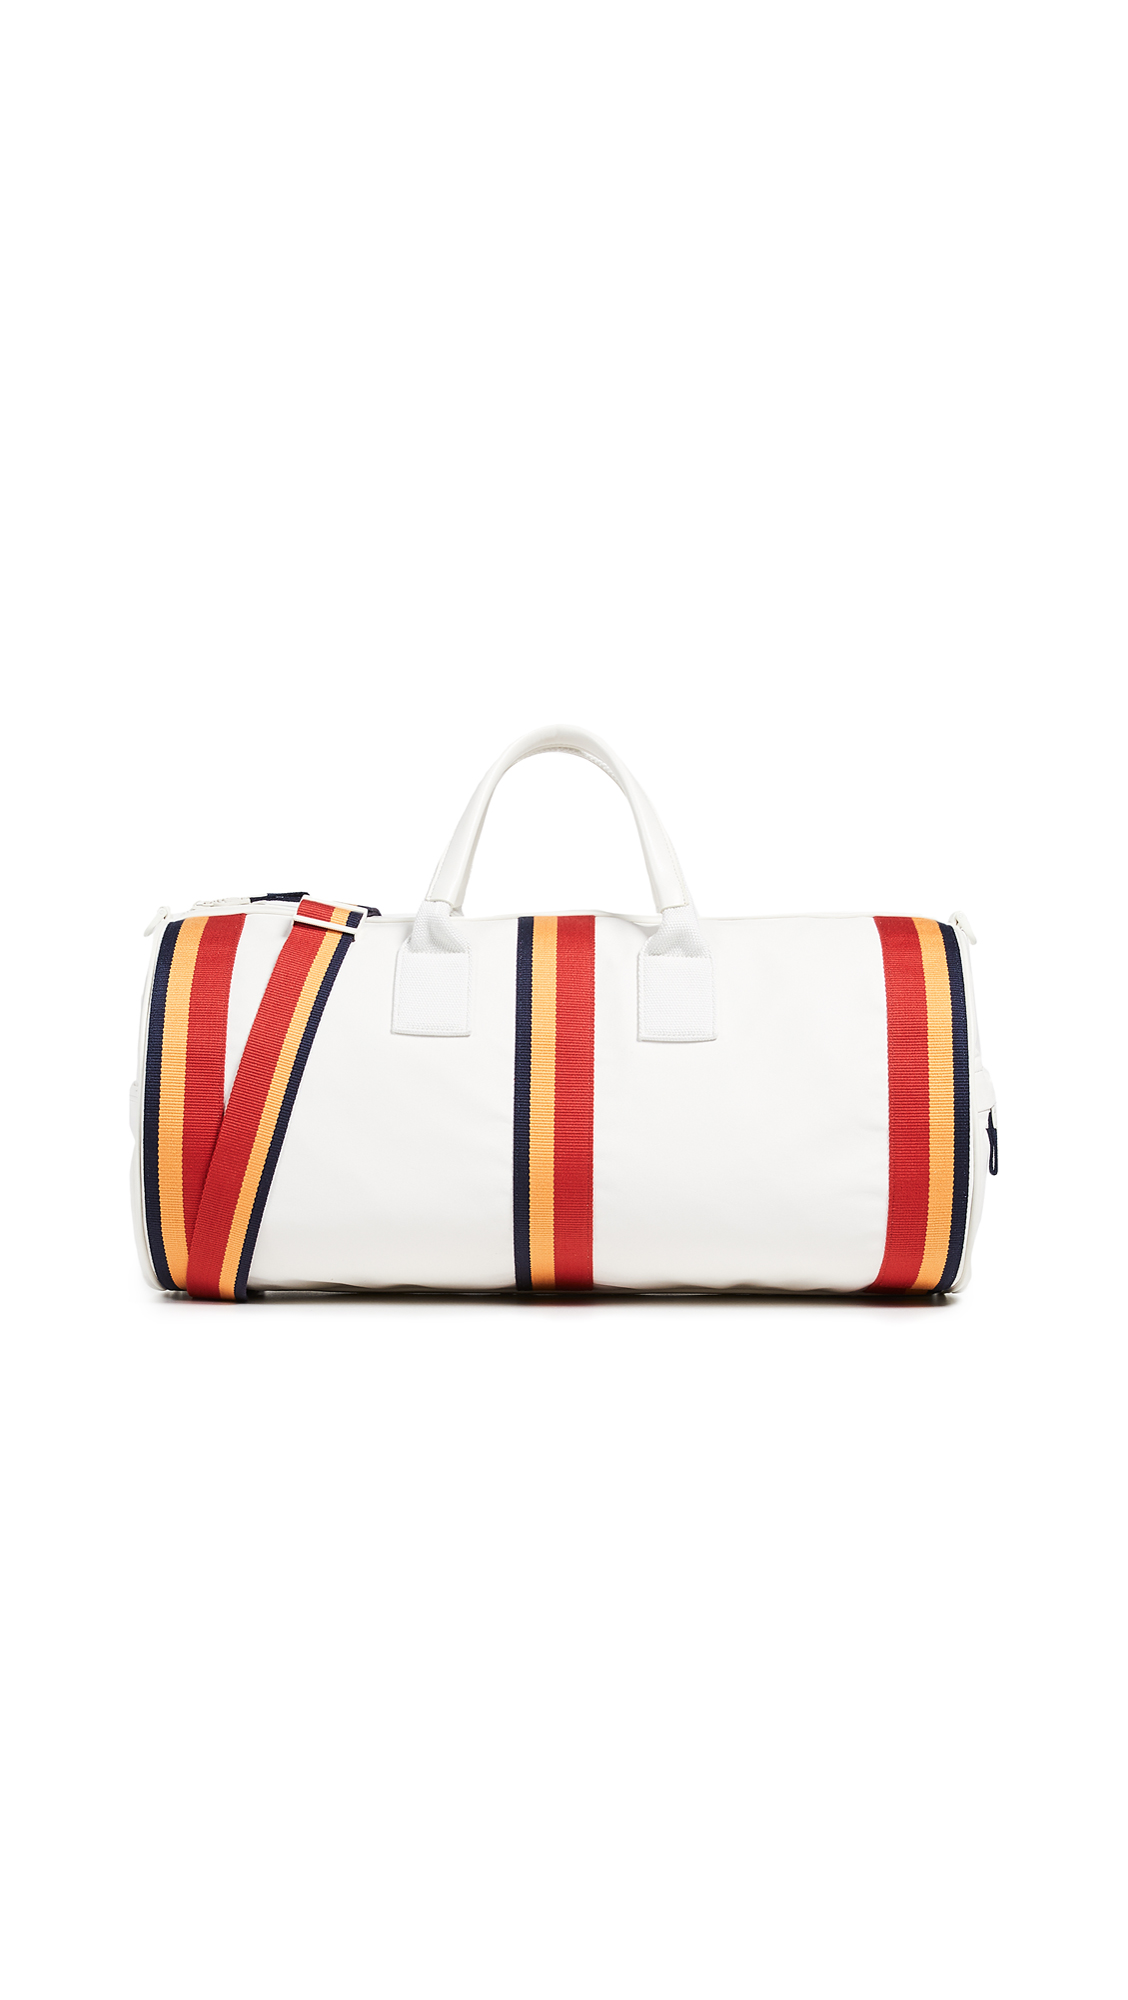 Tory Sport Retro Striped Weekender Duffel Bag - Ivory Pearl